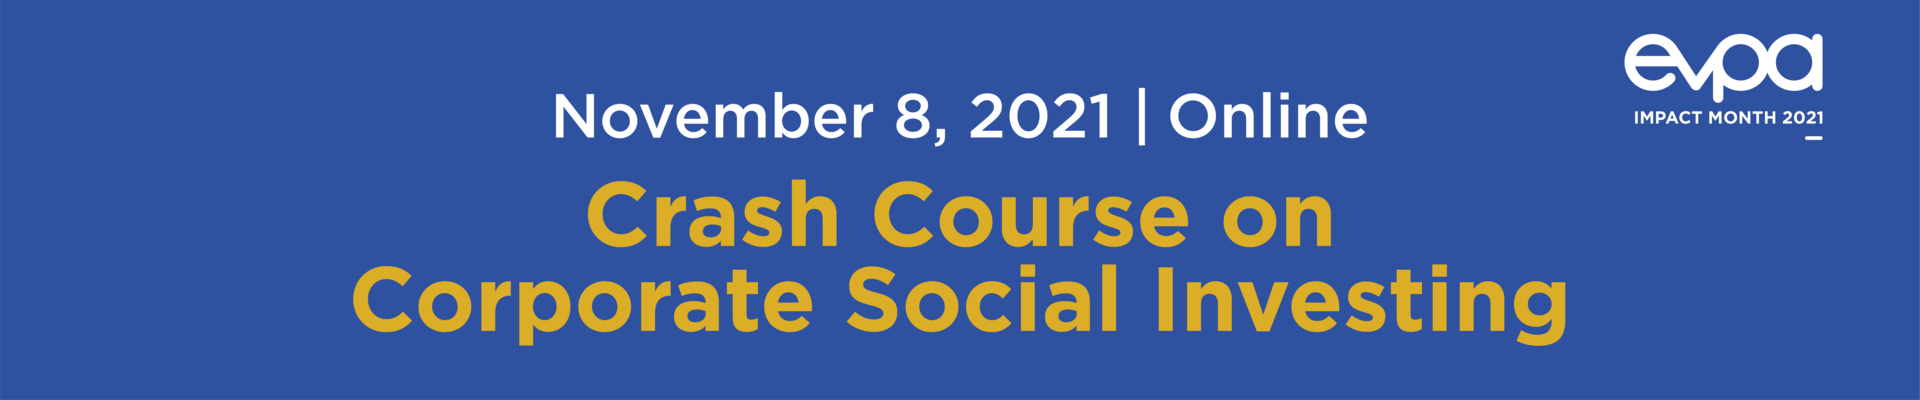 EVPA Crash Course on Corporate Social Investing